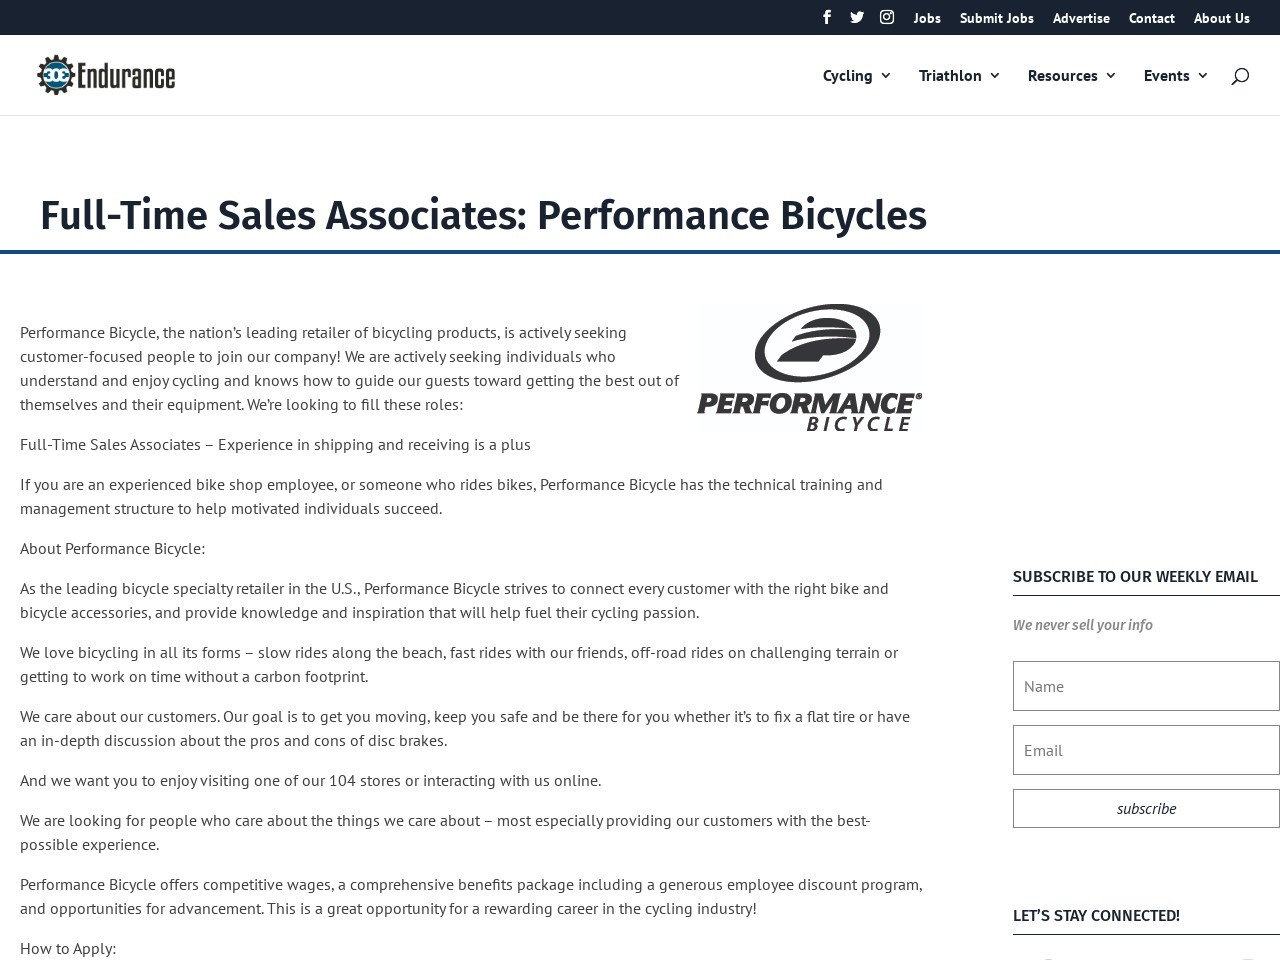 Full-Time Sales Associates: Performance Bicycles